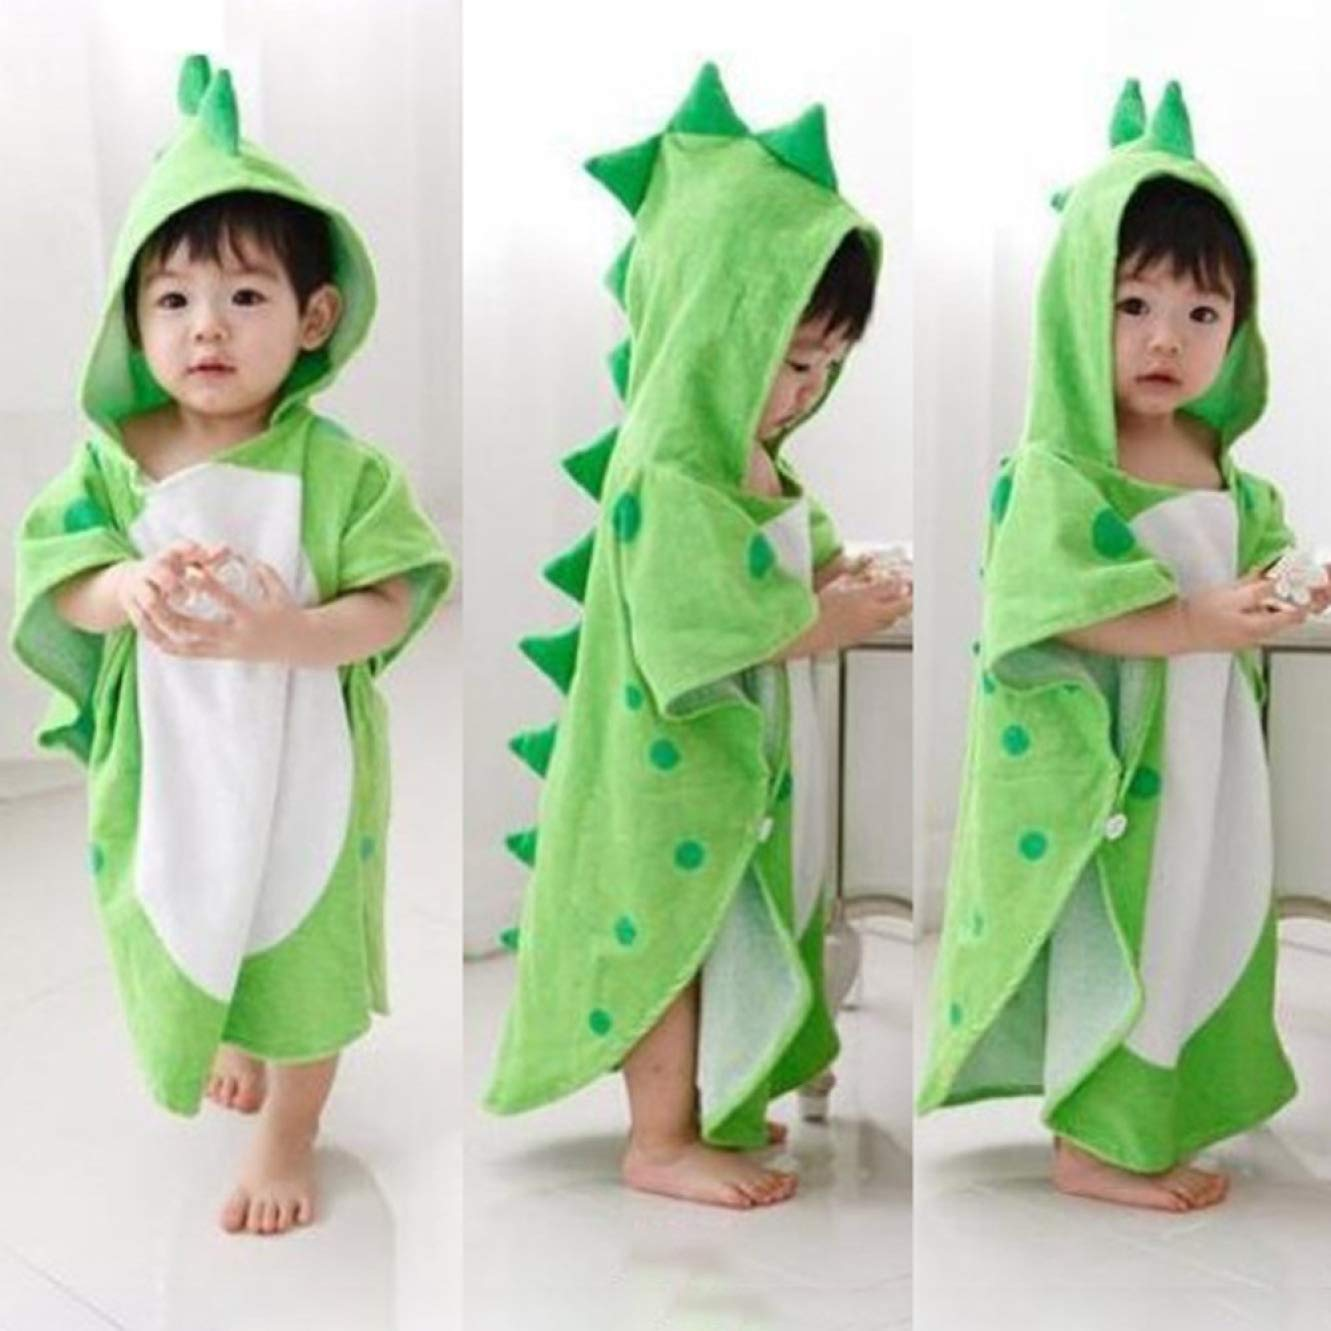 guantongda Durable Children Bath Towel Robe Cartoon Hooded Bathrobe Green